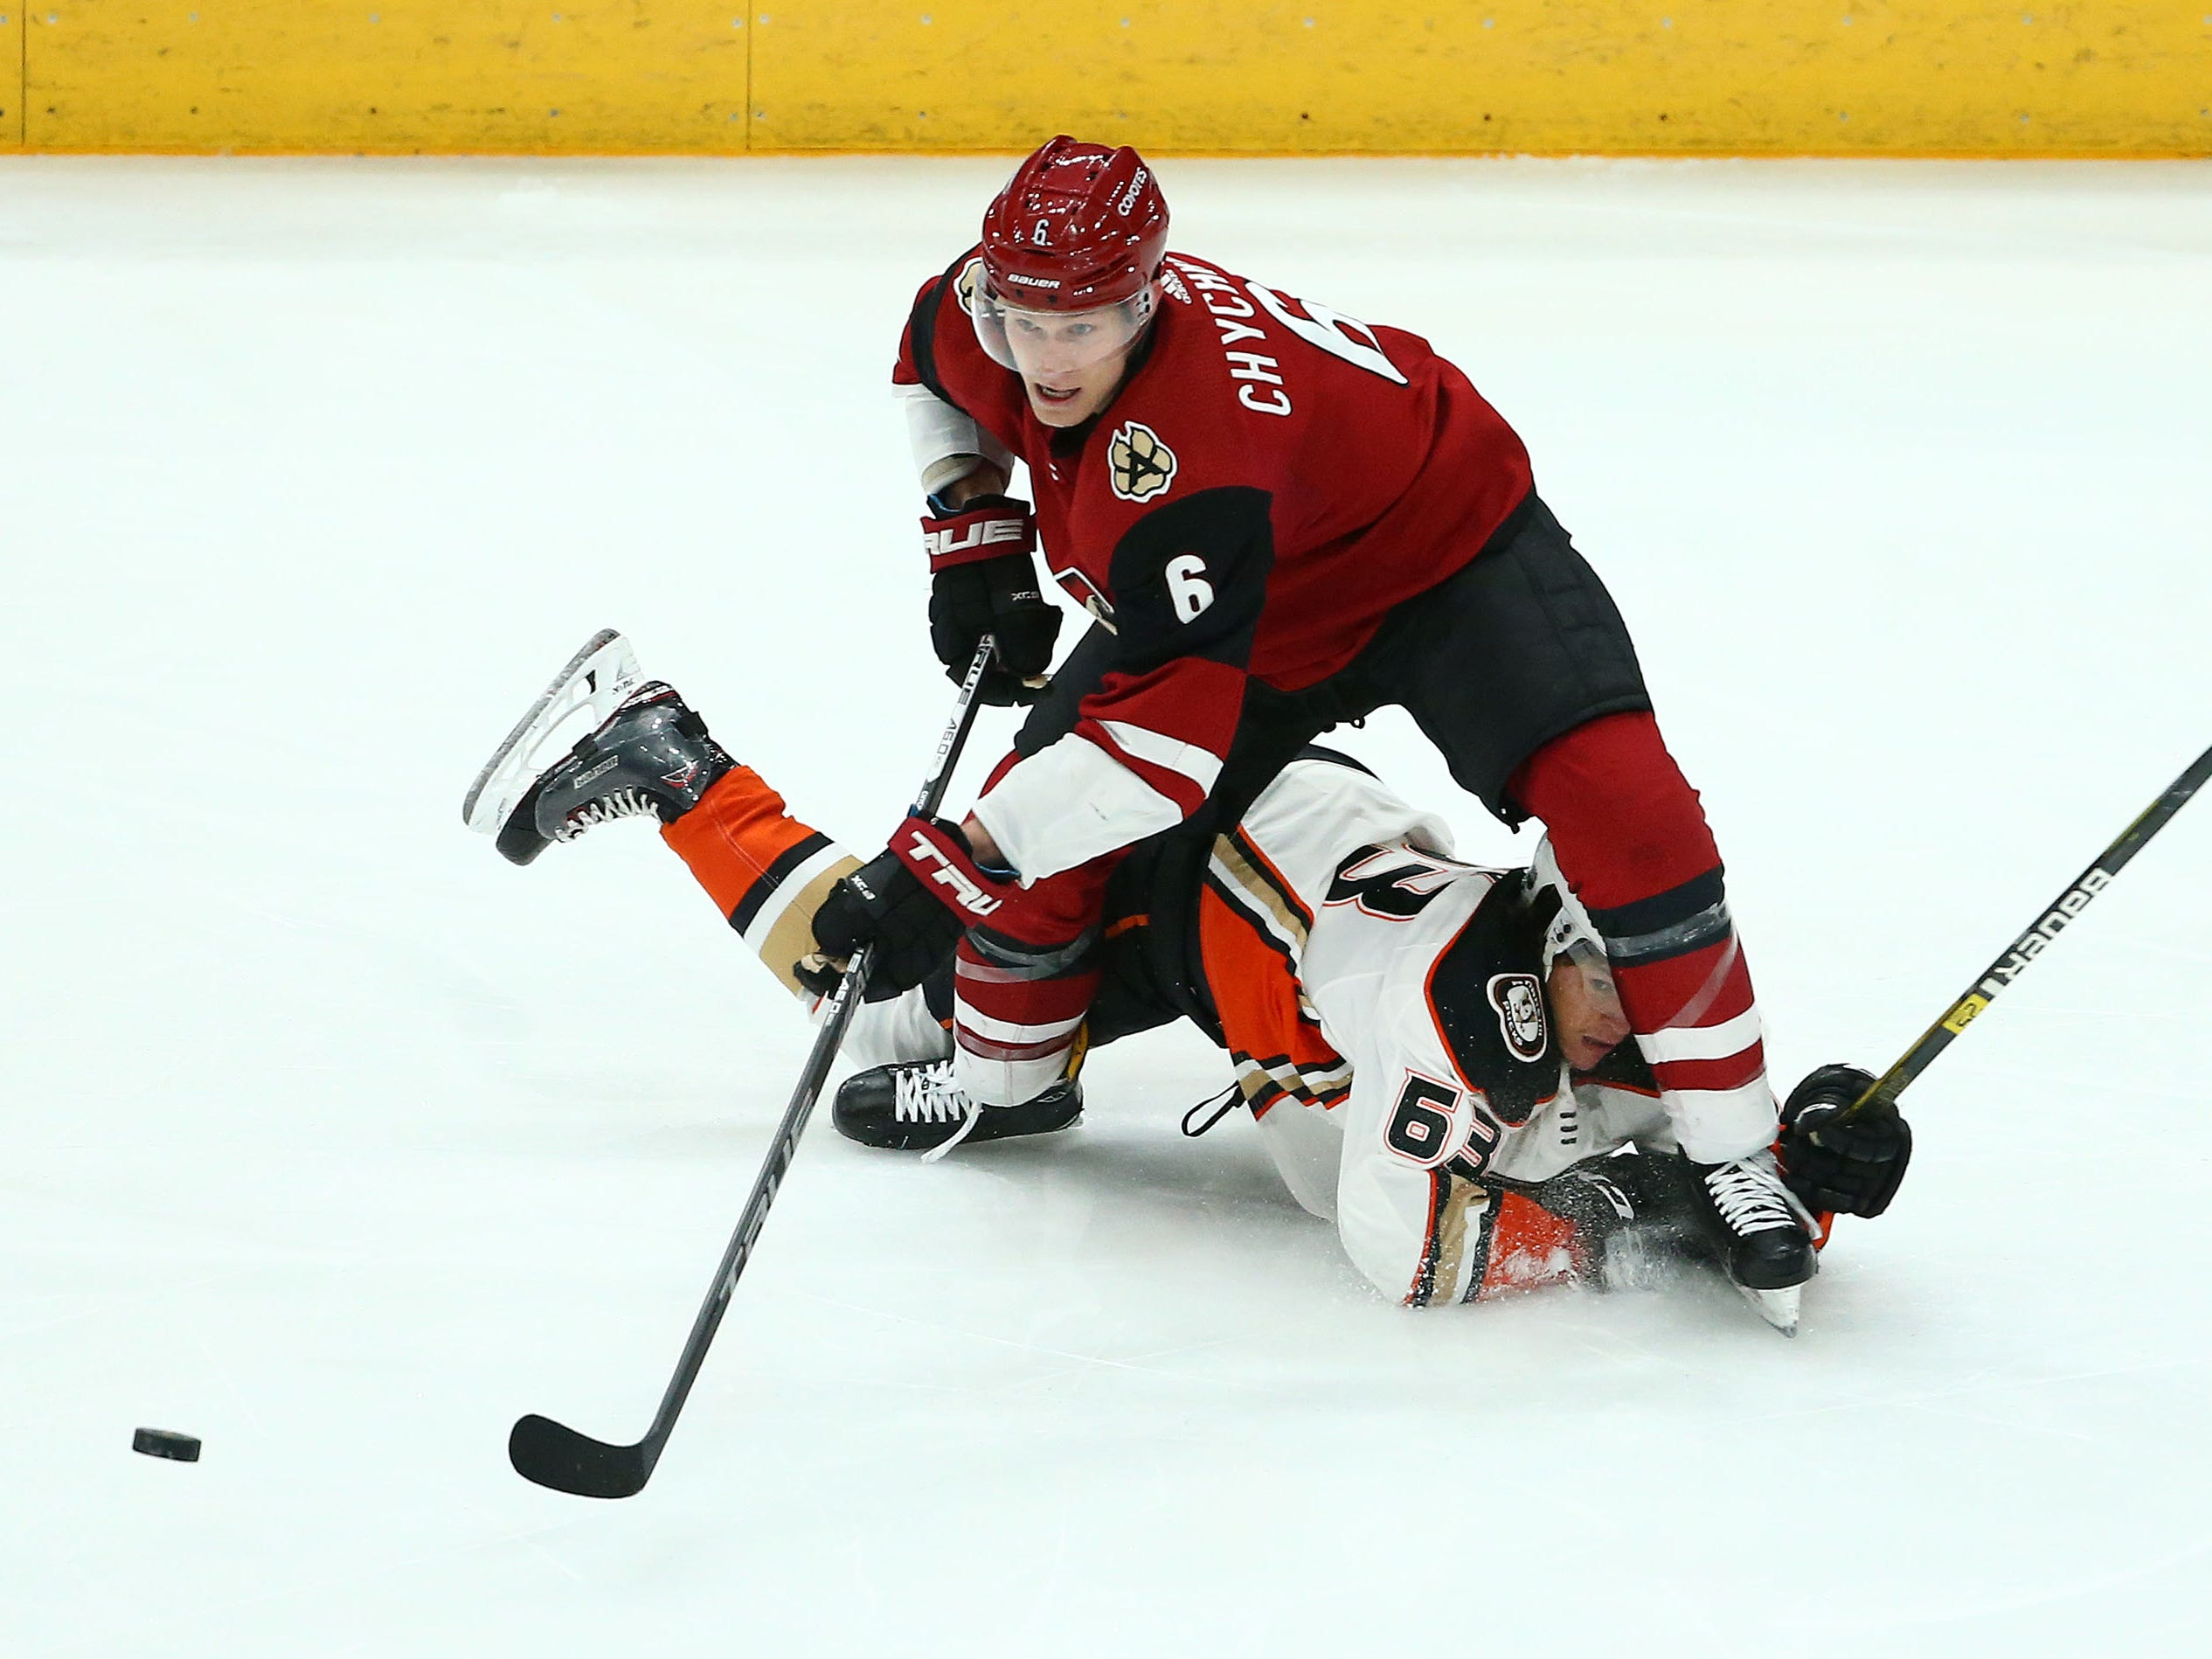 Arizona Coyotes defenseman Jakob Chychrun (6) collides with Anaheim Ducks left wing Kevin Roy (63) in the first period on Mar. 5, 2019, at Gila River Arena in Glendale, Ariz.